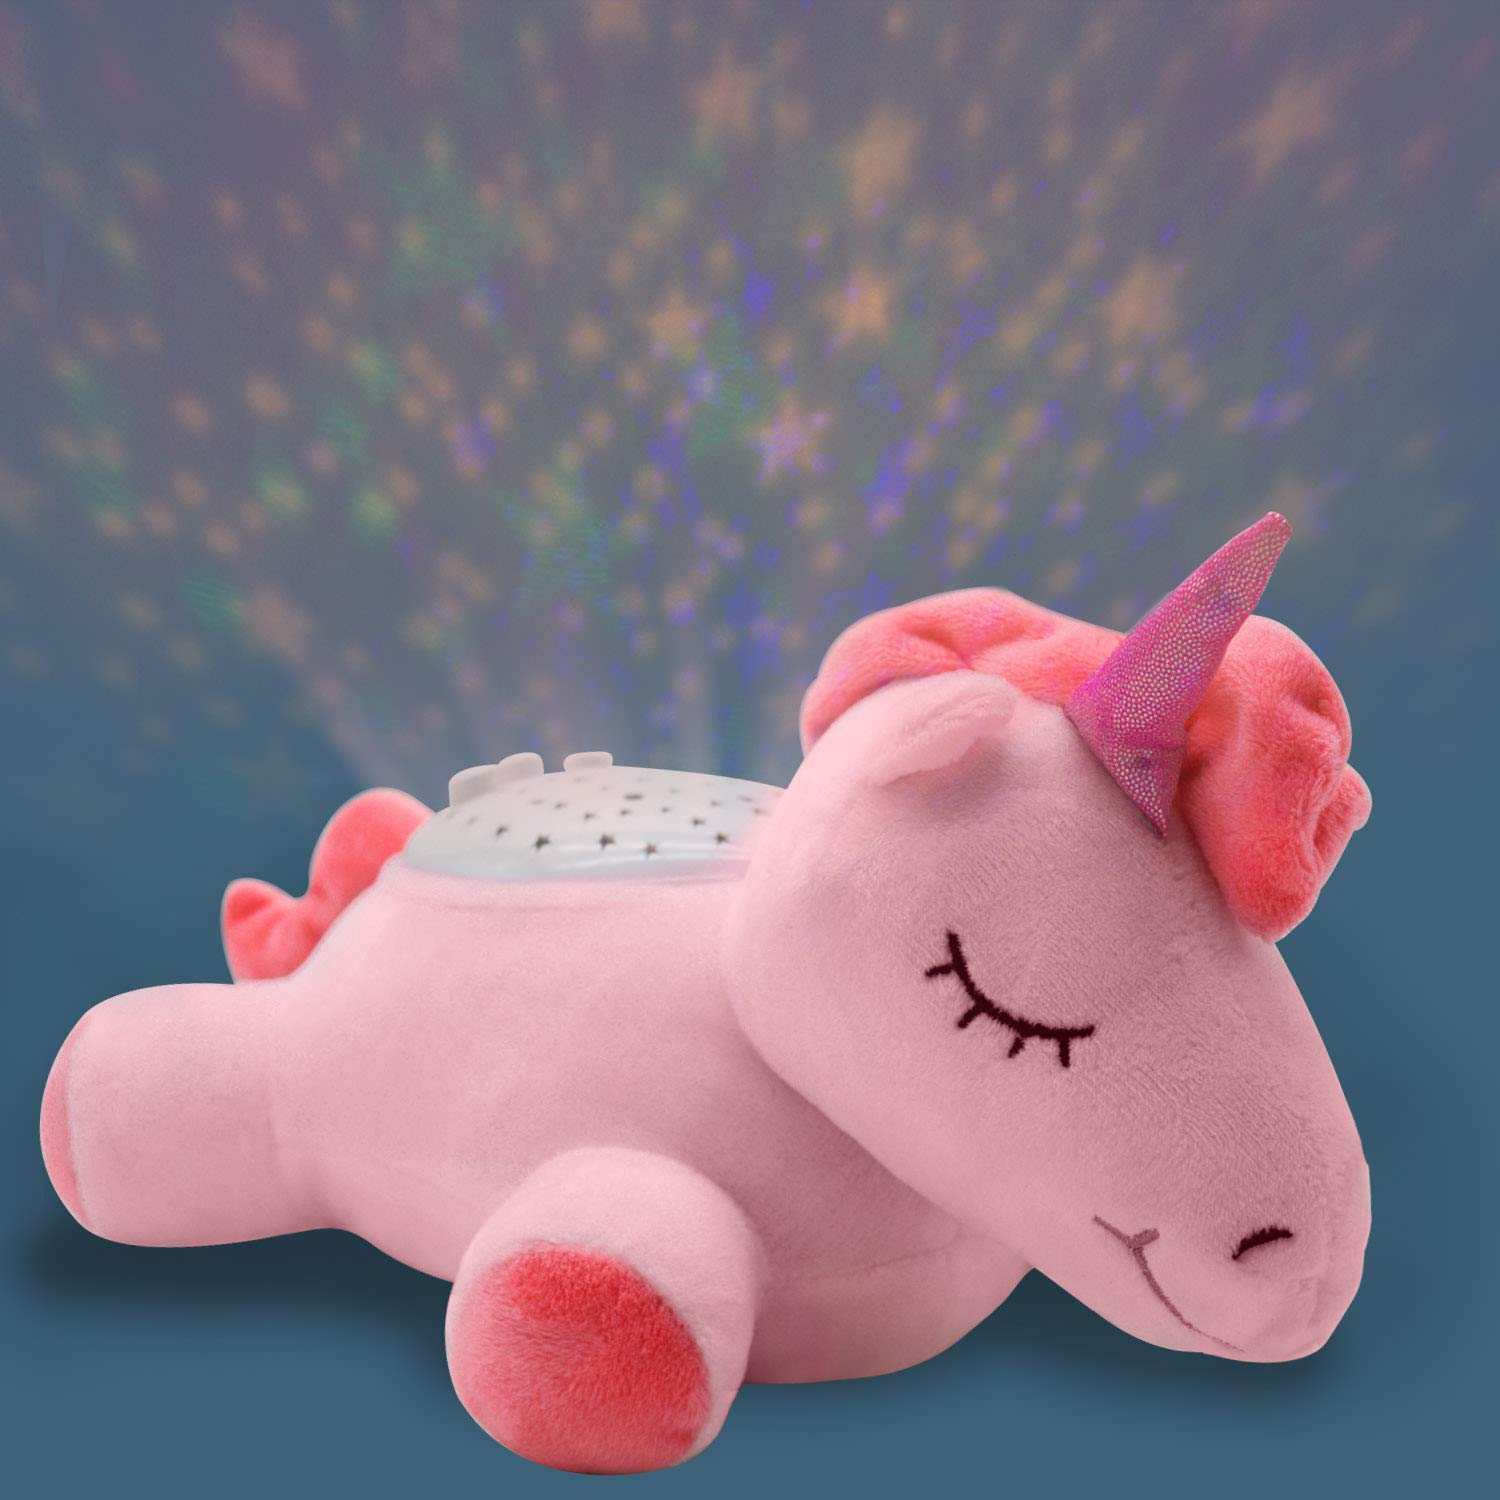 Baby Night Light,Hatch Baby Rest Night Light & Sound Machine - Hatch Sound Machine Night Light Sleep Soothers for Baby Kids Girls Boys Sleeping